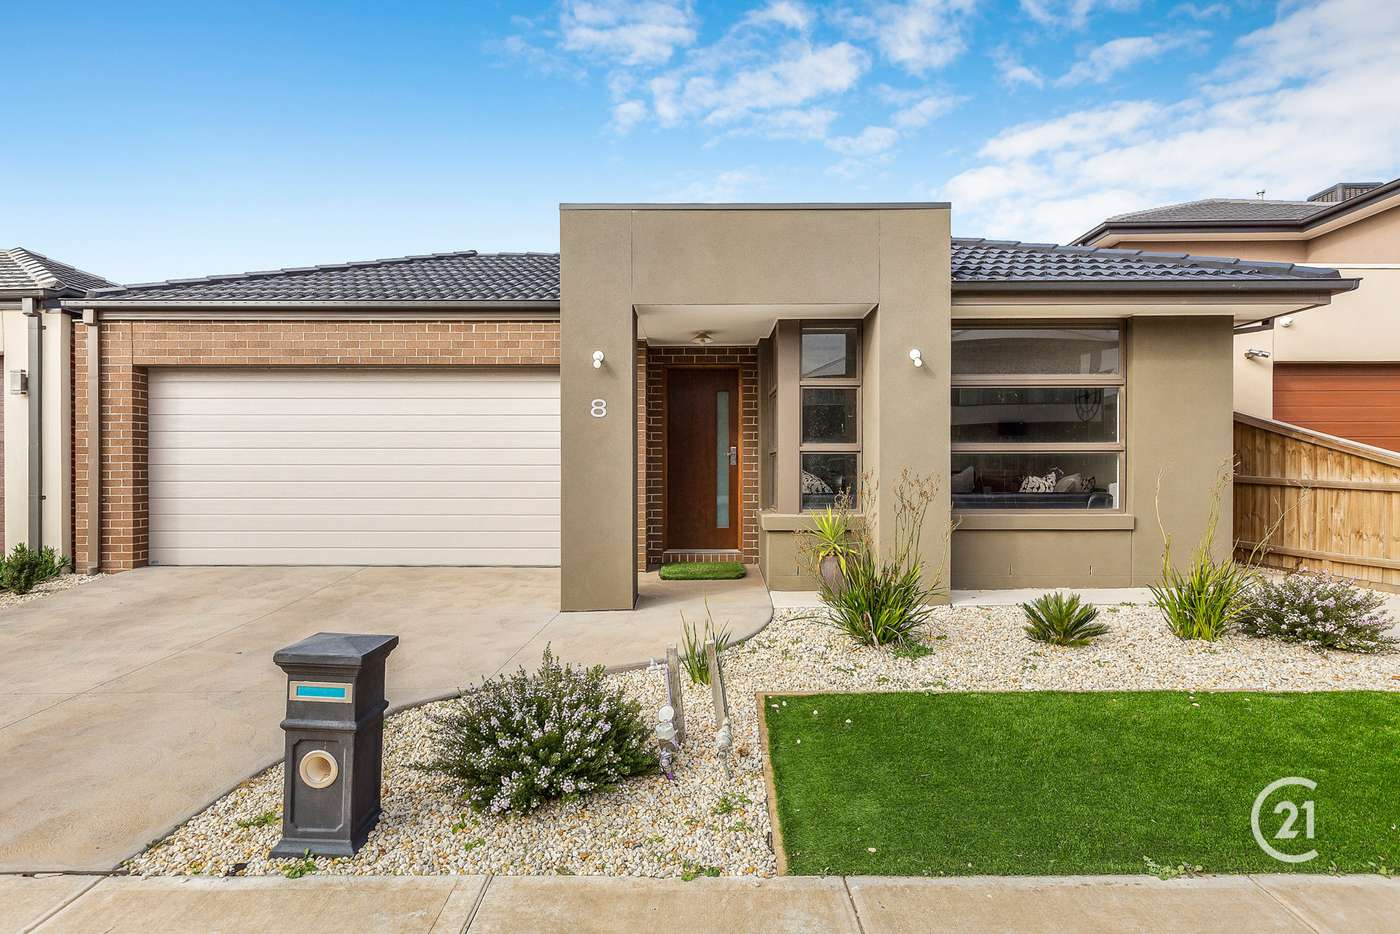 Main view of Homely house listing, 8 Amersfort Street, Point Cook VIC 3030